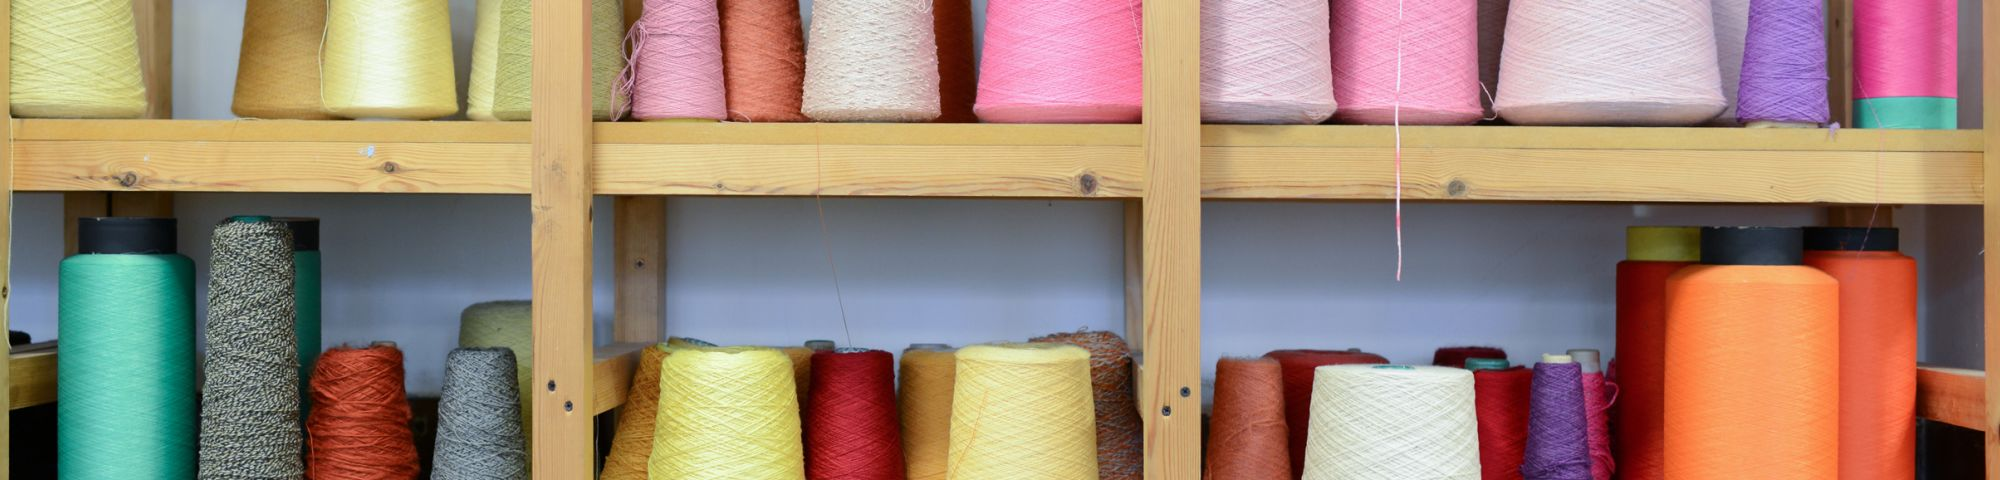 Spools of pink, yellow, blue and orange thread on a shelf